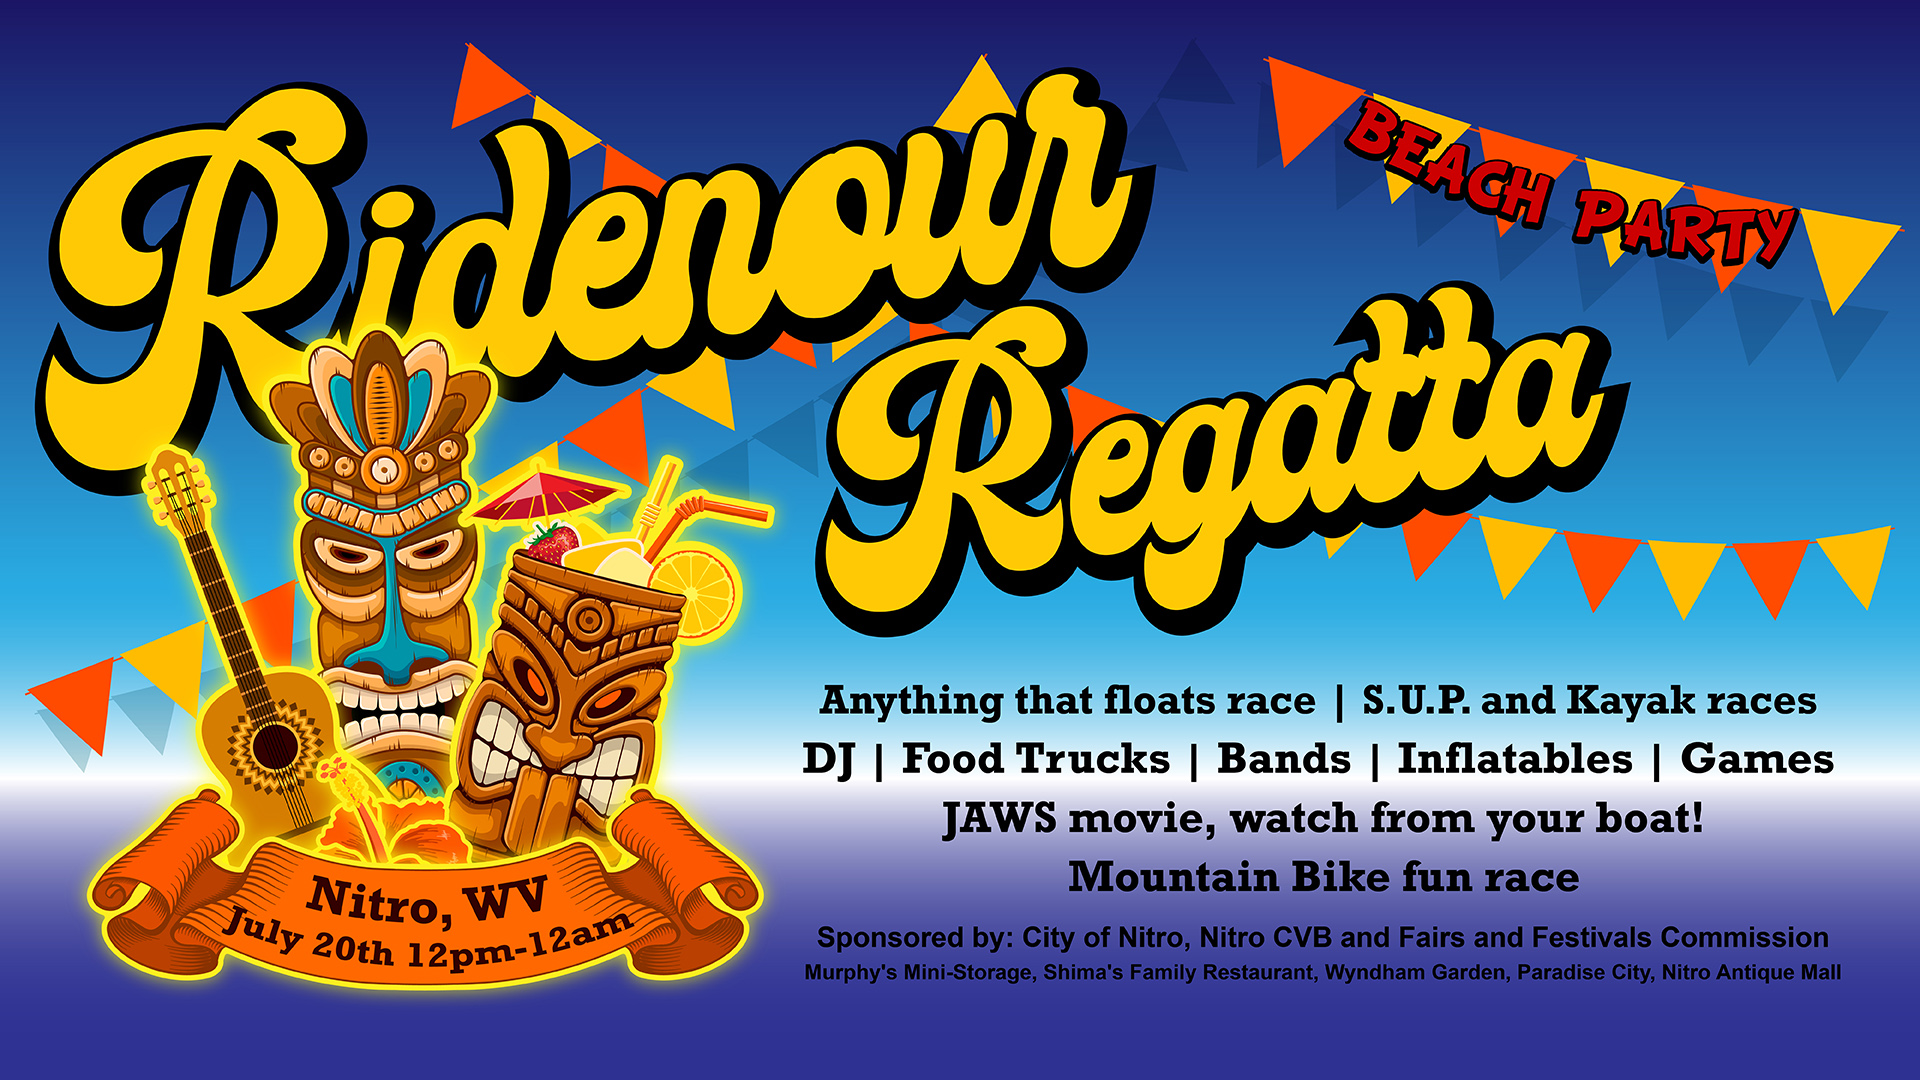 Ridenour Regatta FB Event Header